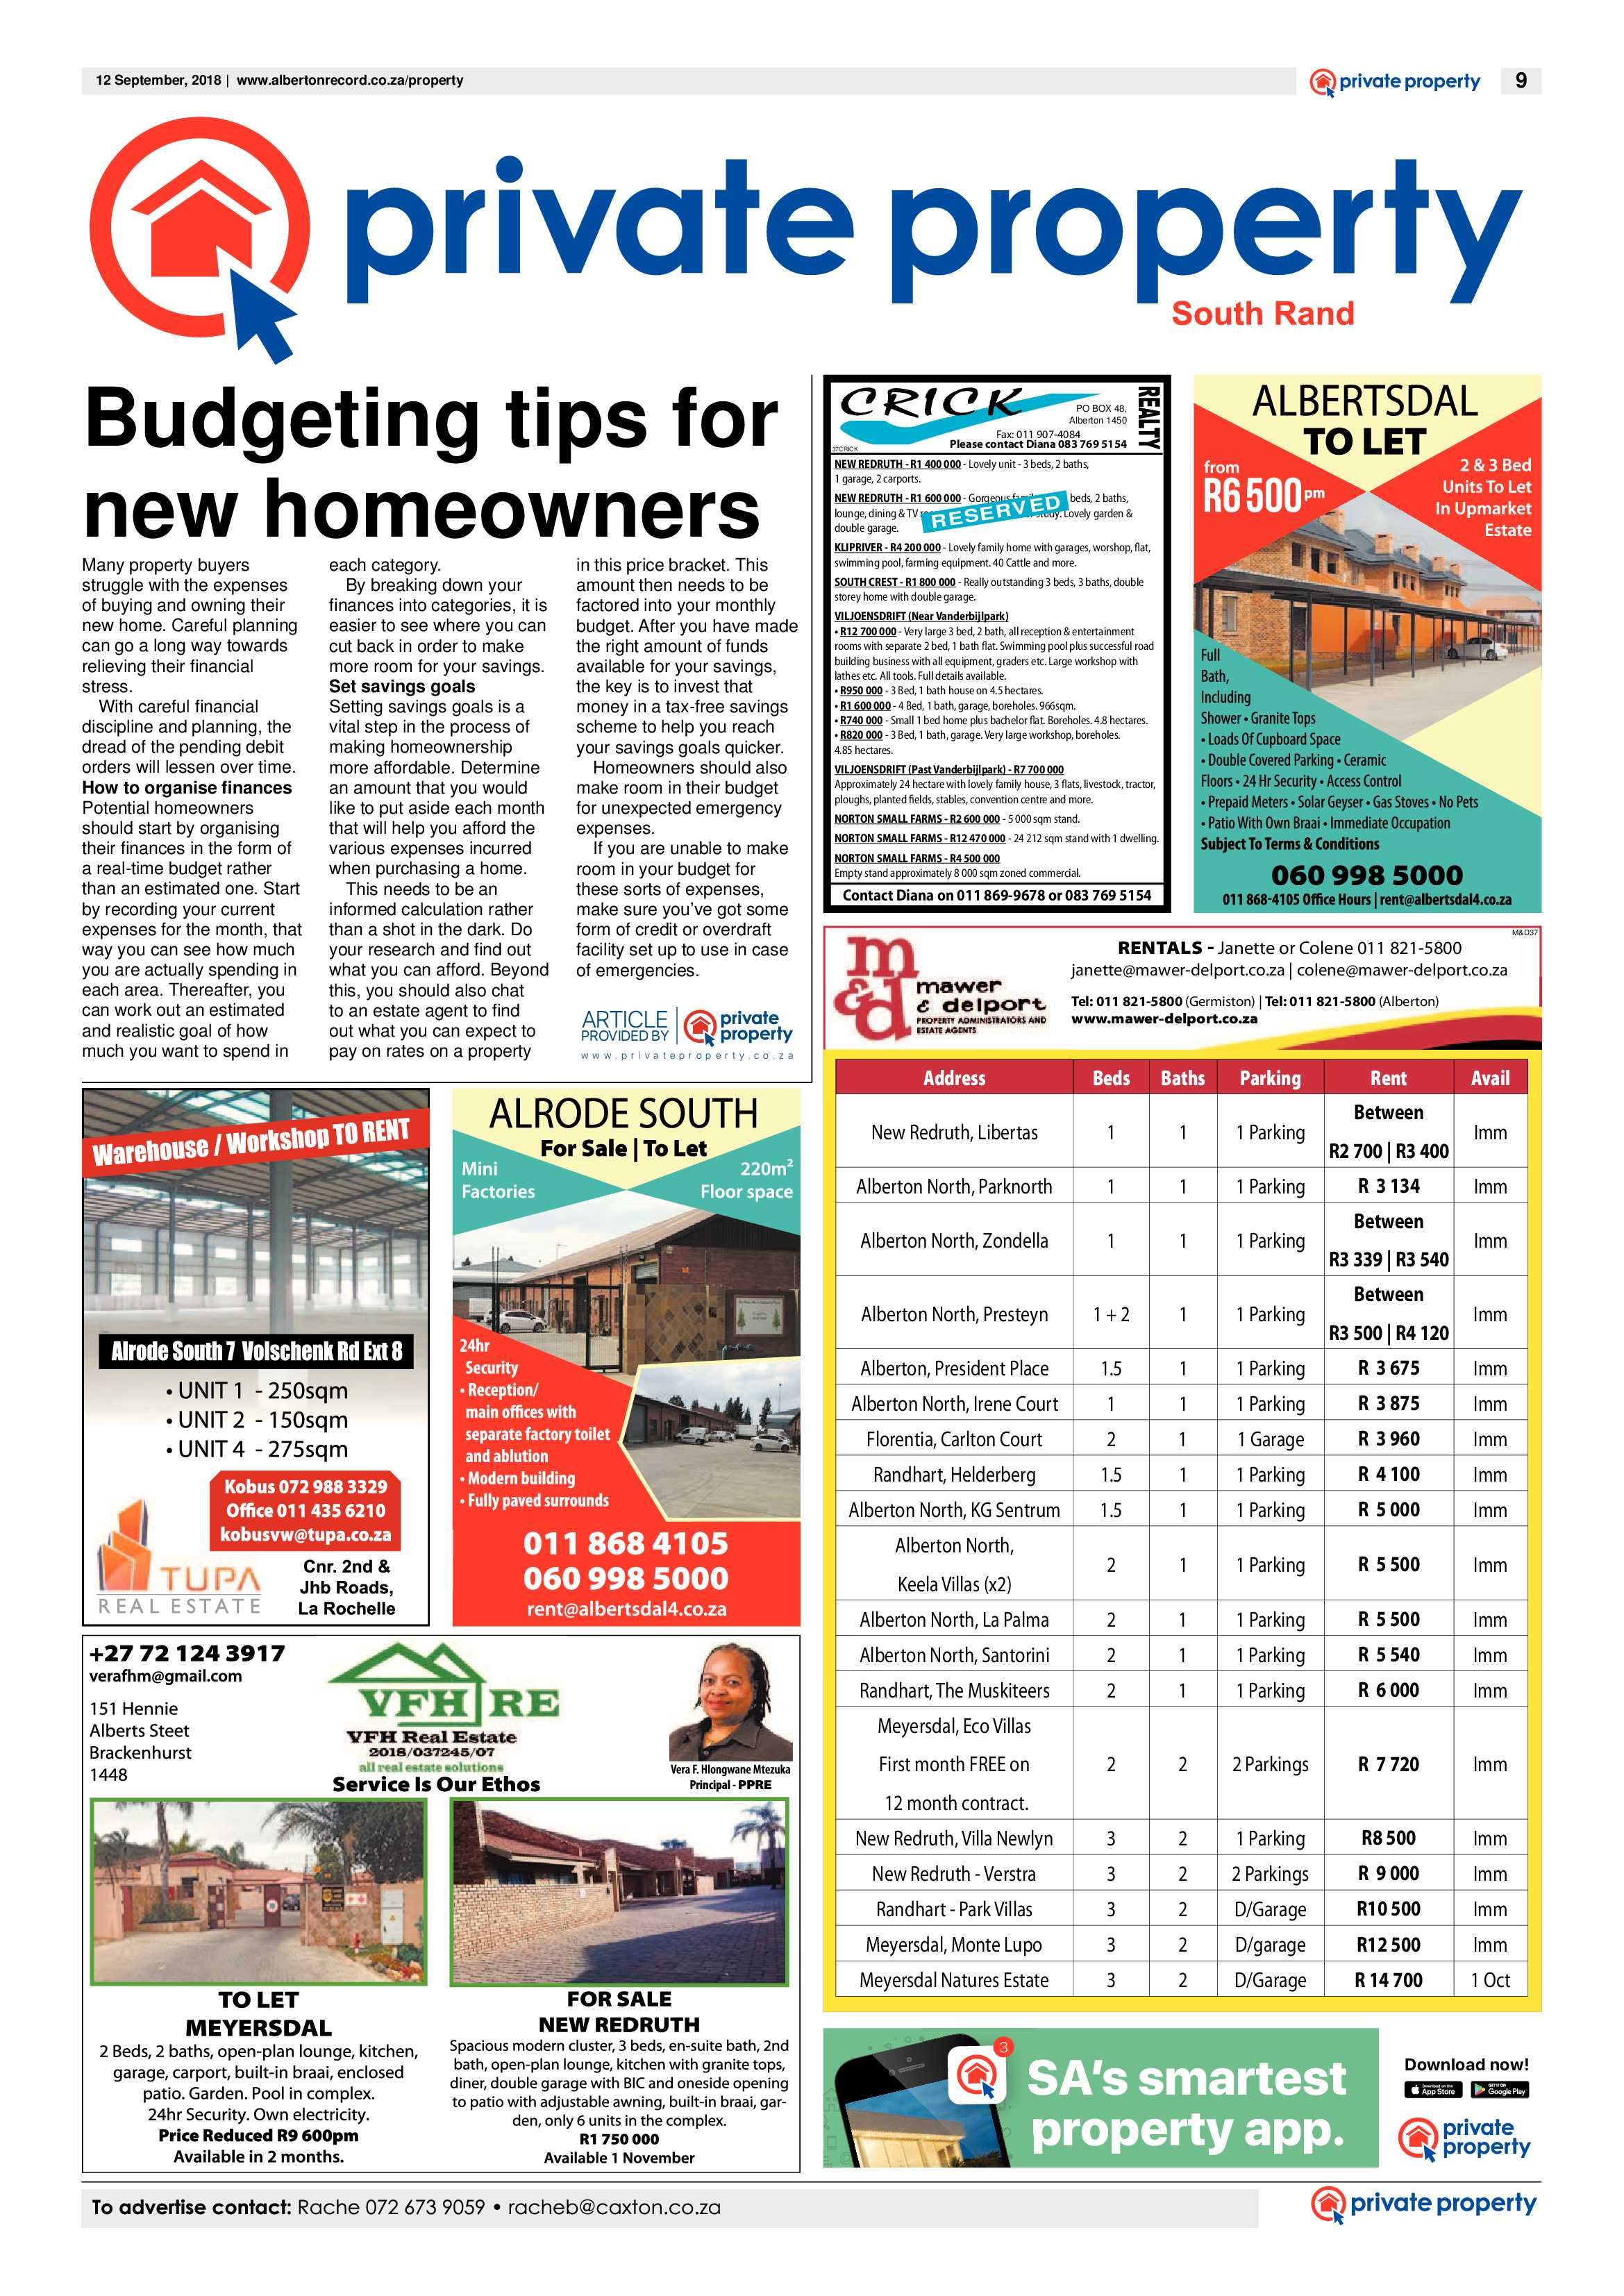 alberton-record-12-september-2018-epapers-page-9